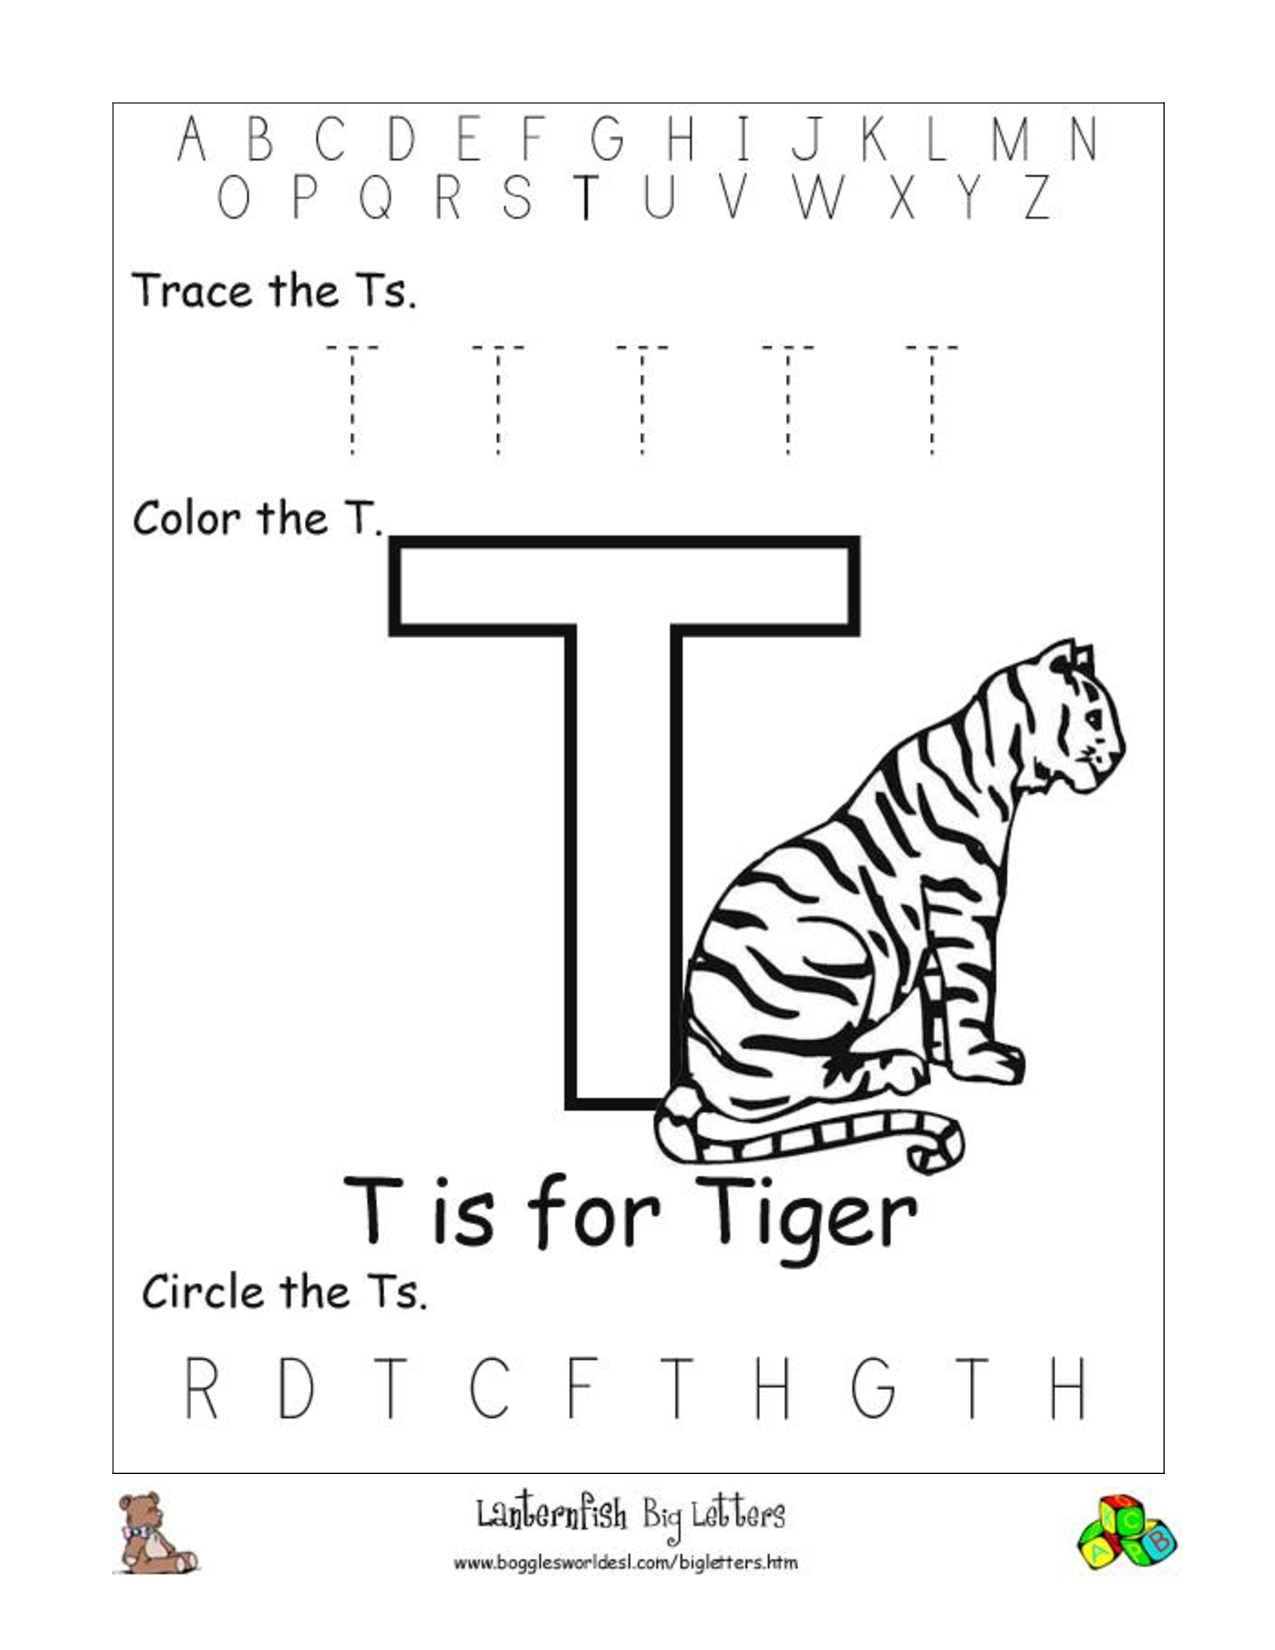 6 Best Images of Letter T Worksheets Printable - Printable Letter ...